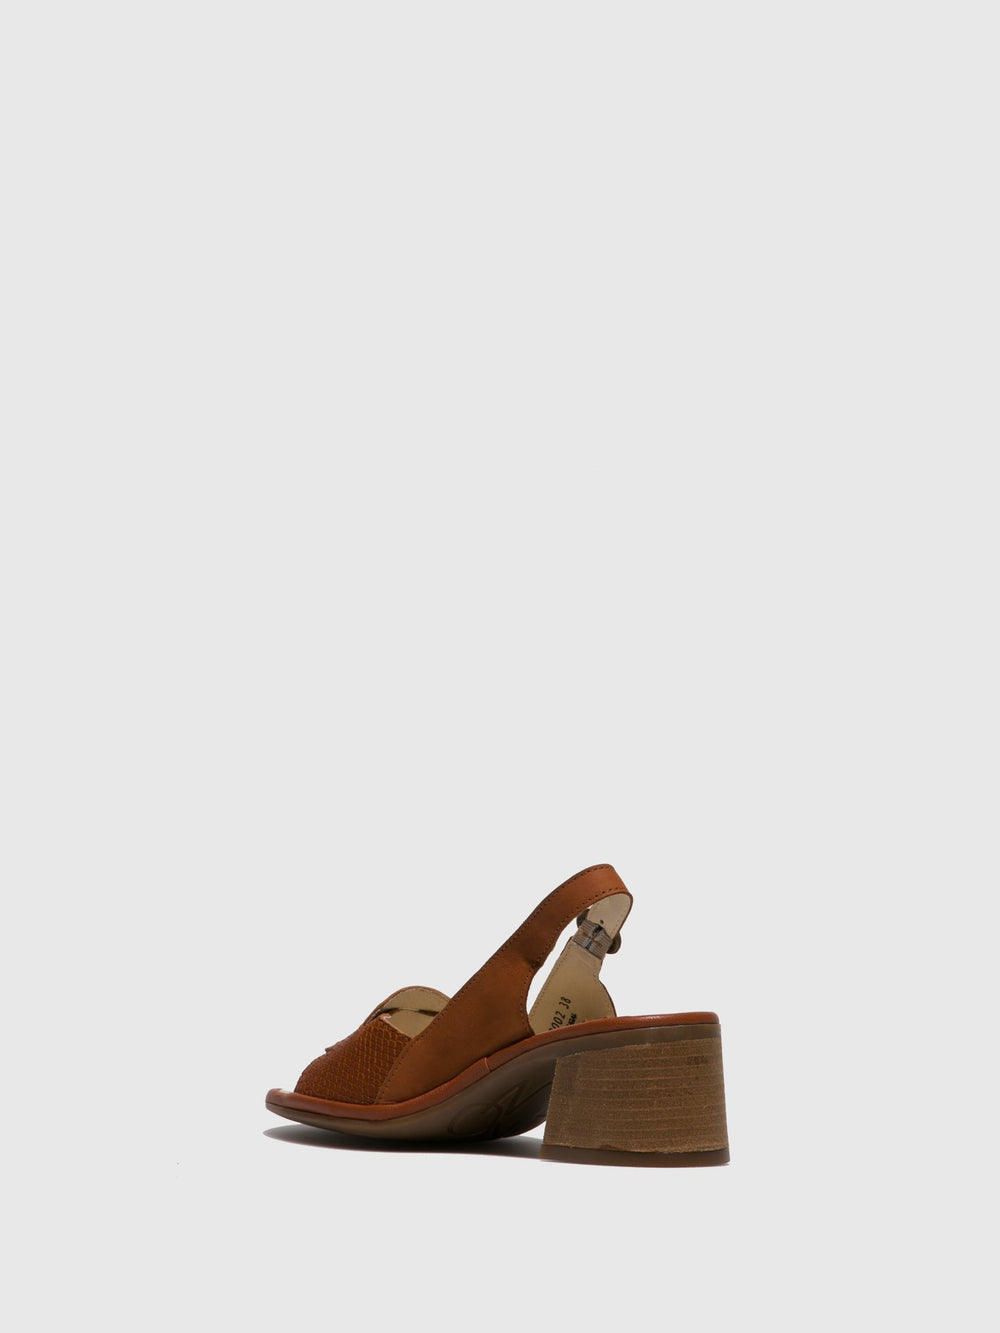 Sling-Back Sandals LESO179FLY TAN